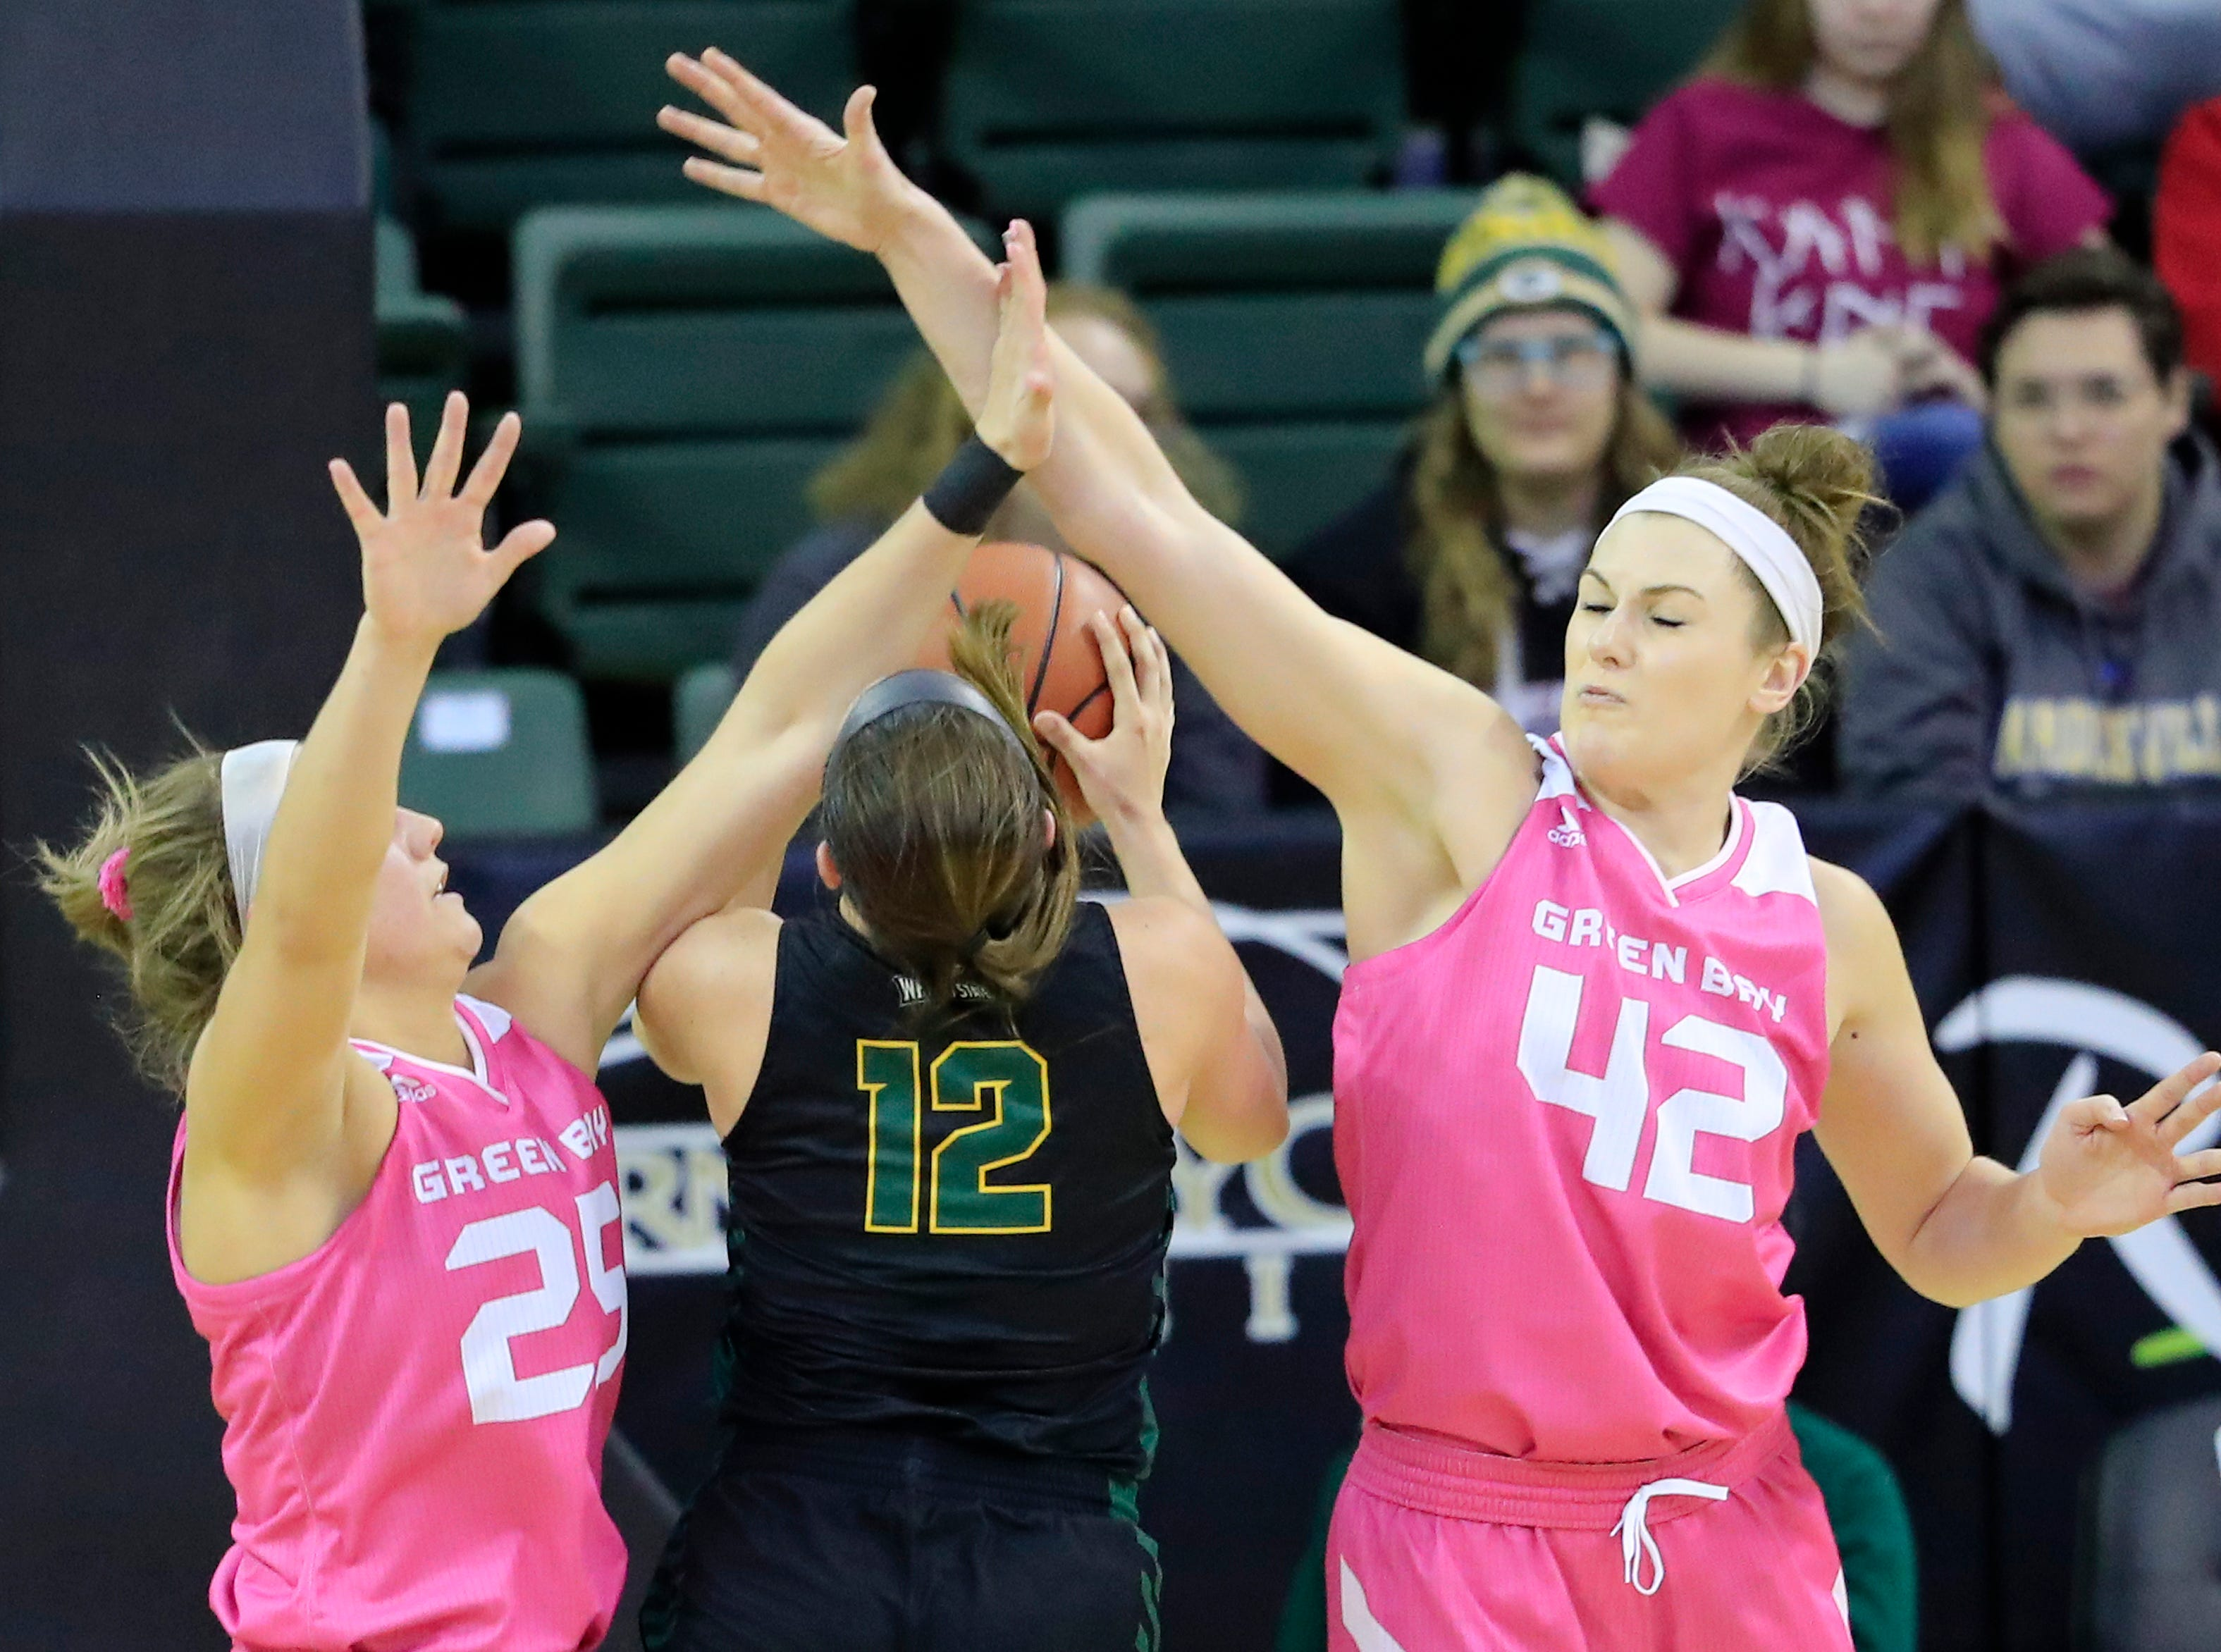 Green Bay Phoenix guard/forward Lyndsey Robson (25) and forward/center Mackenzie Wolf (42) defend a shot by Wright State Raiders guard Mackenzie Taylor (12) in a Horizon League women's basketball game at the Kress Center on Saturday, February 9, 2019 in Green Bay, Wis.